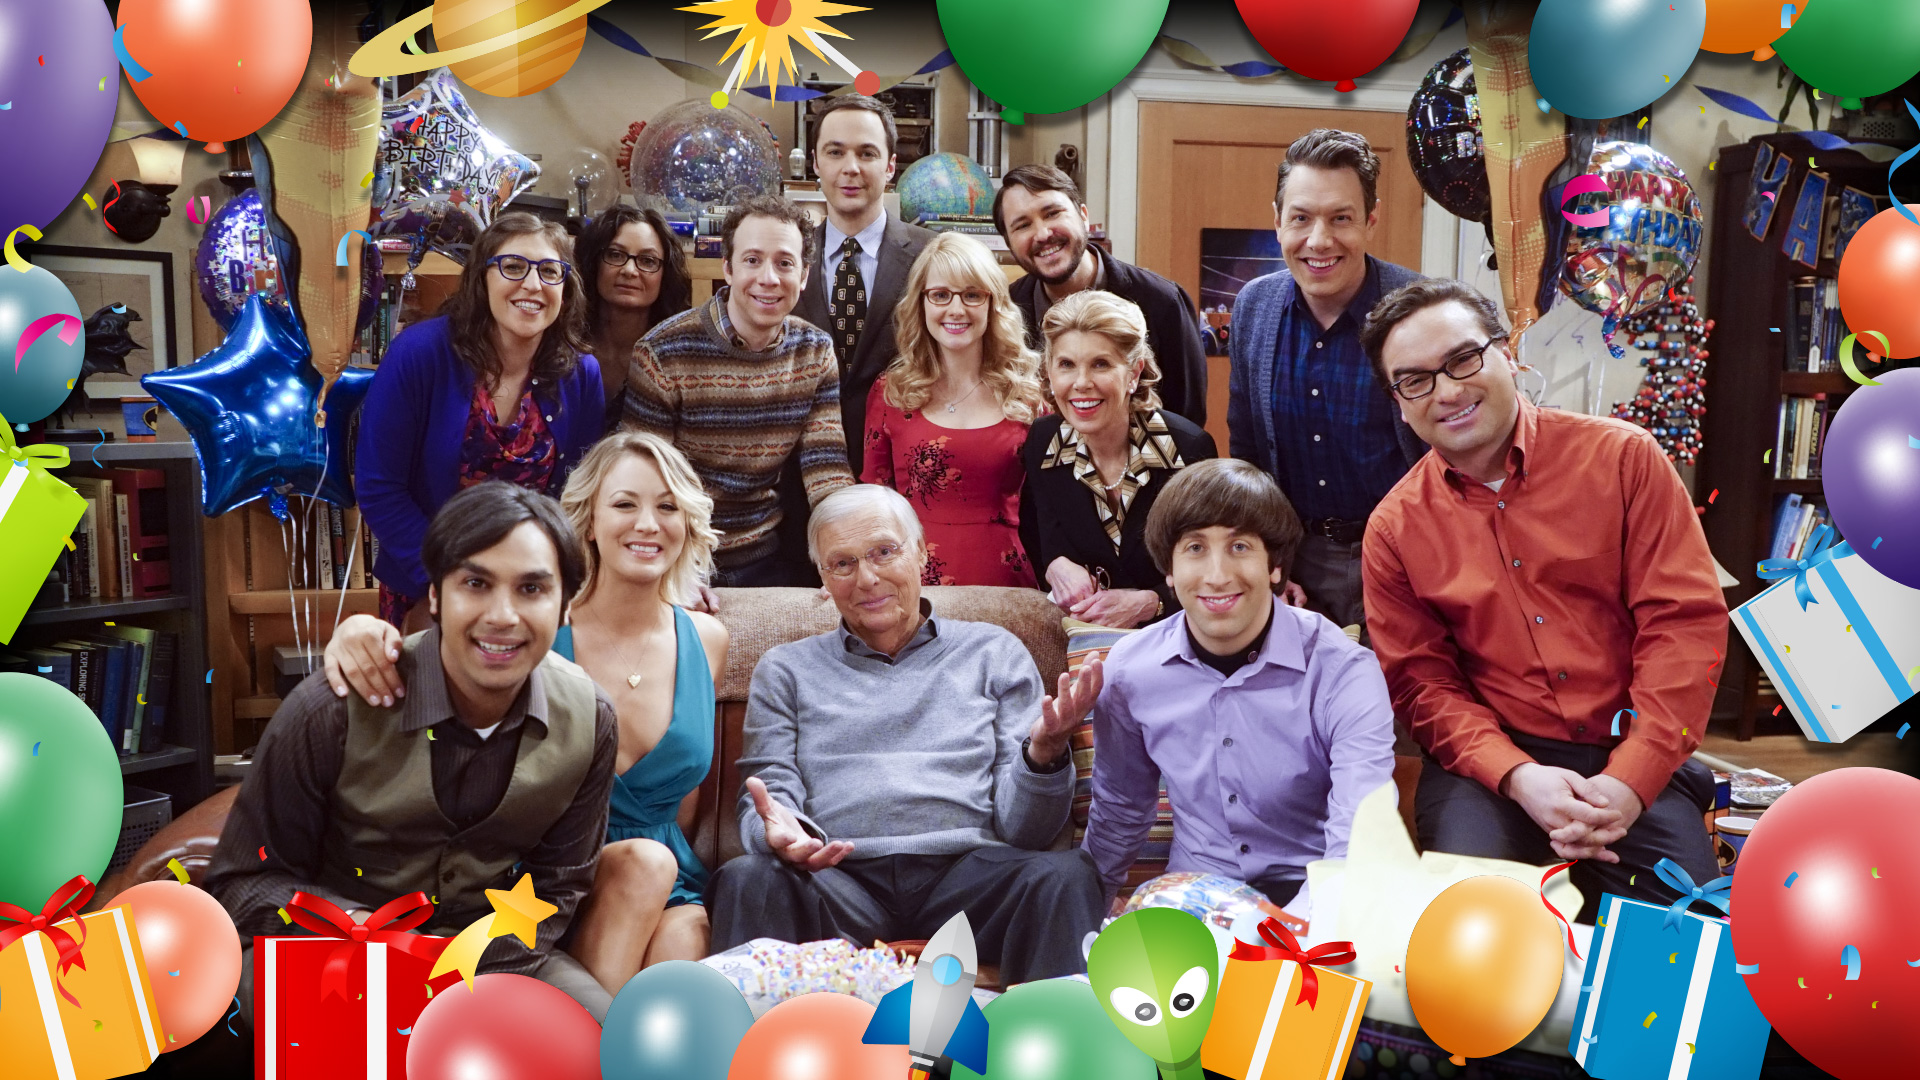 Happy 200th episode to the cast, crew, and fans of The Big Bang Theory!